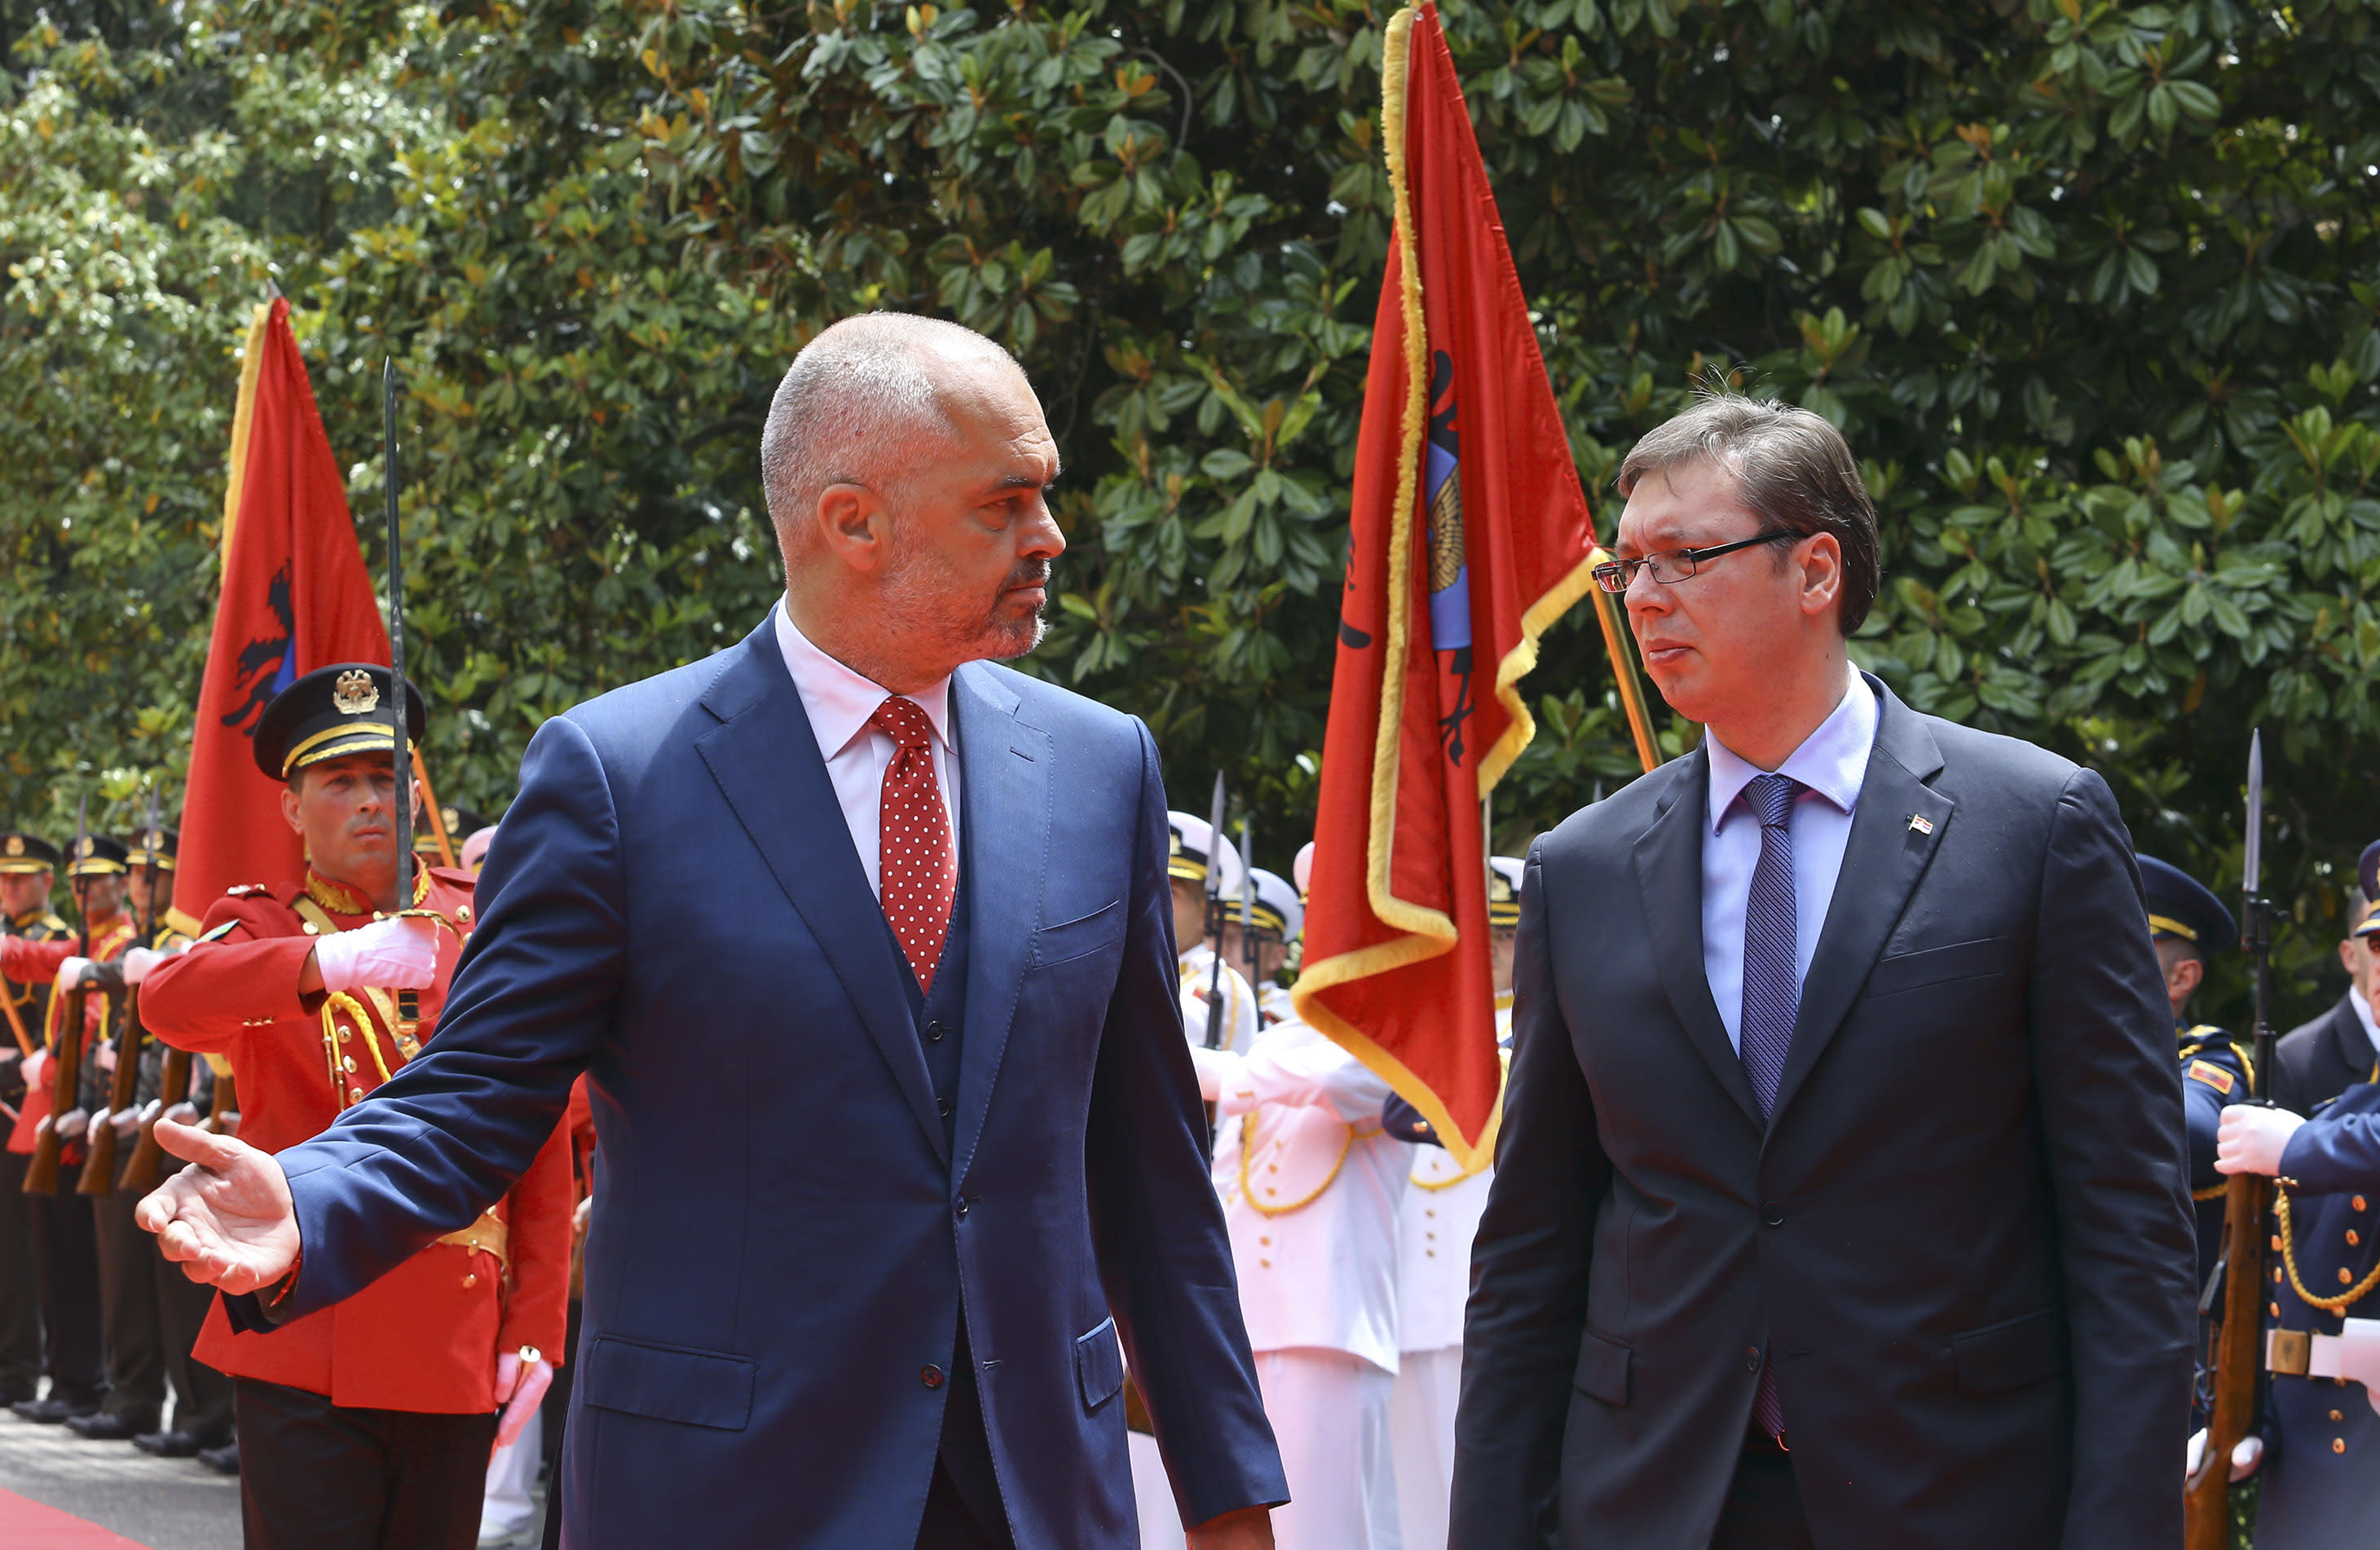 Serbian prime minister makes landmark visit to Albania